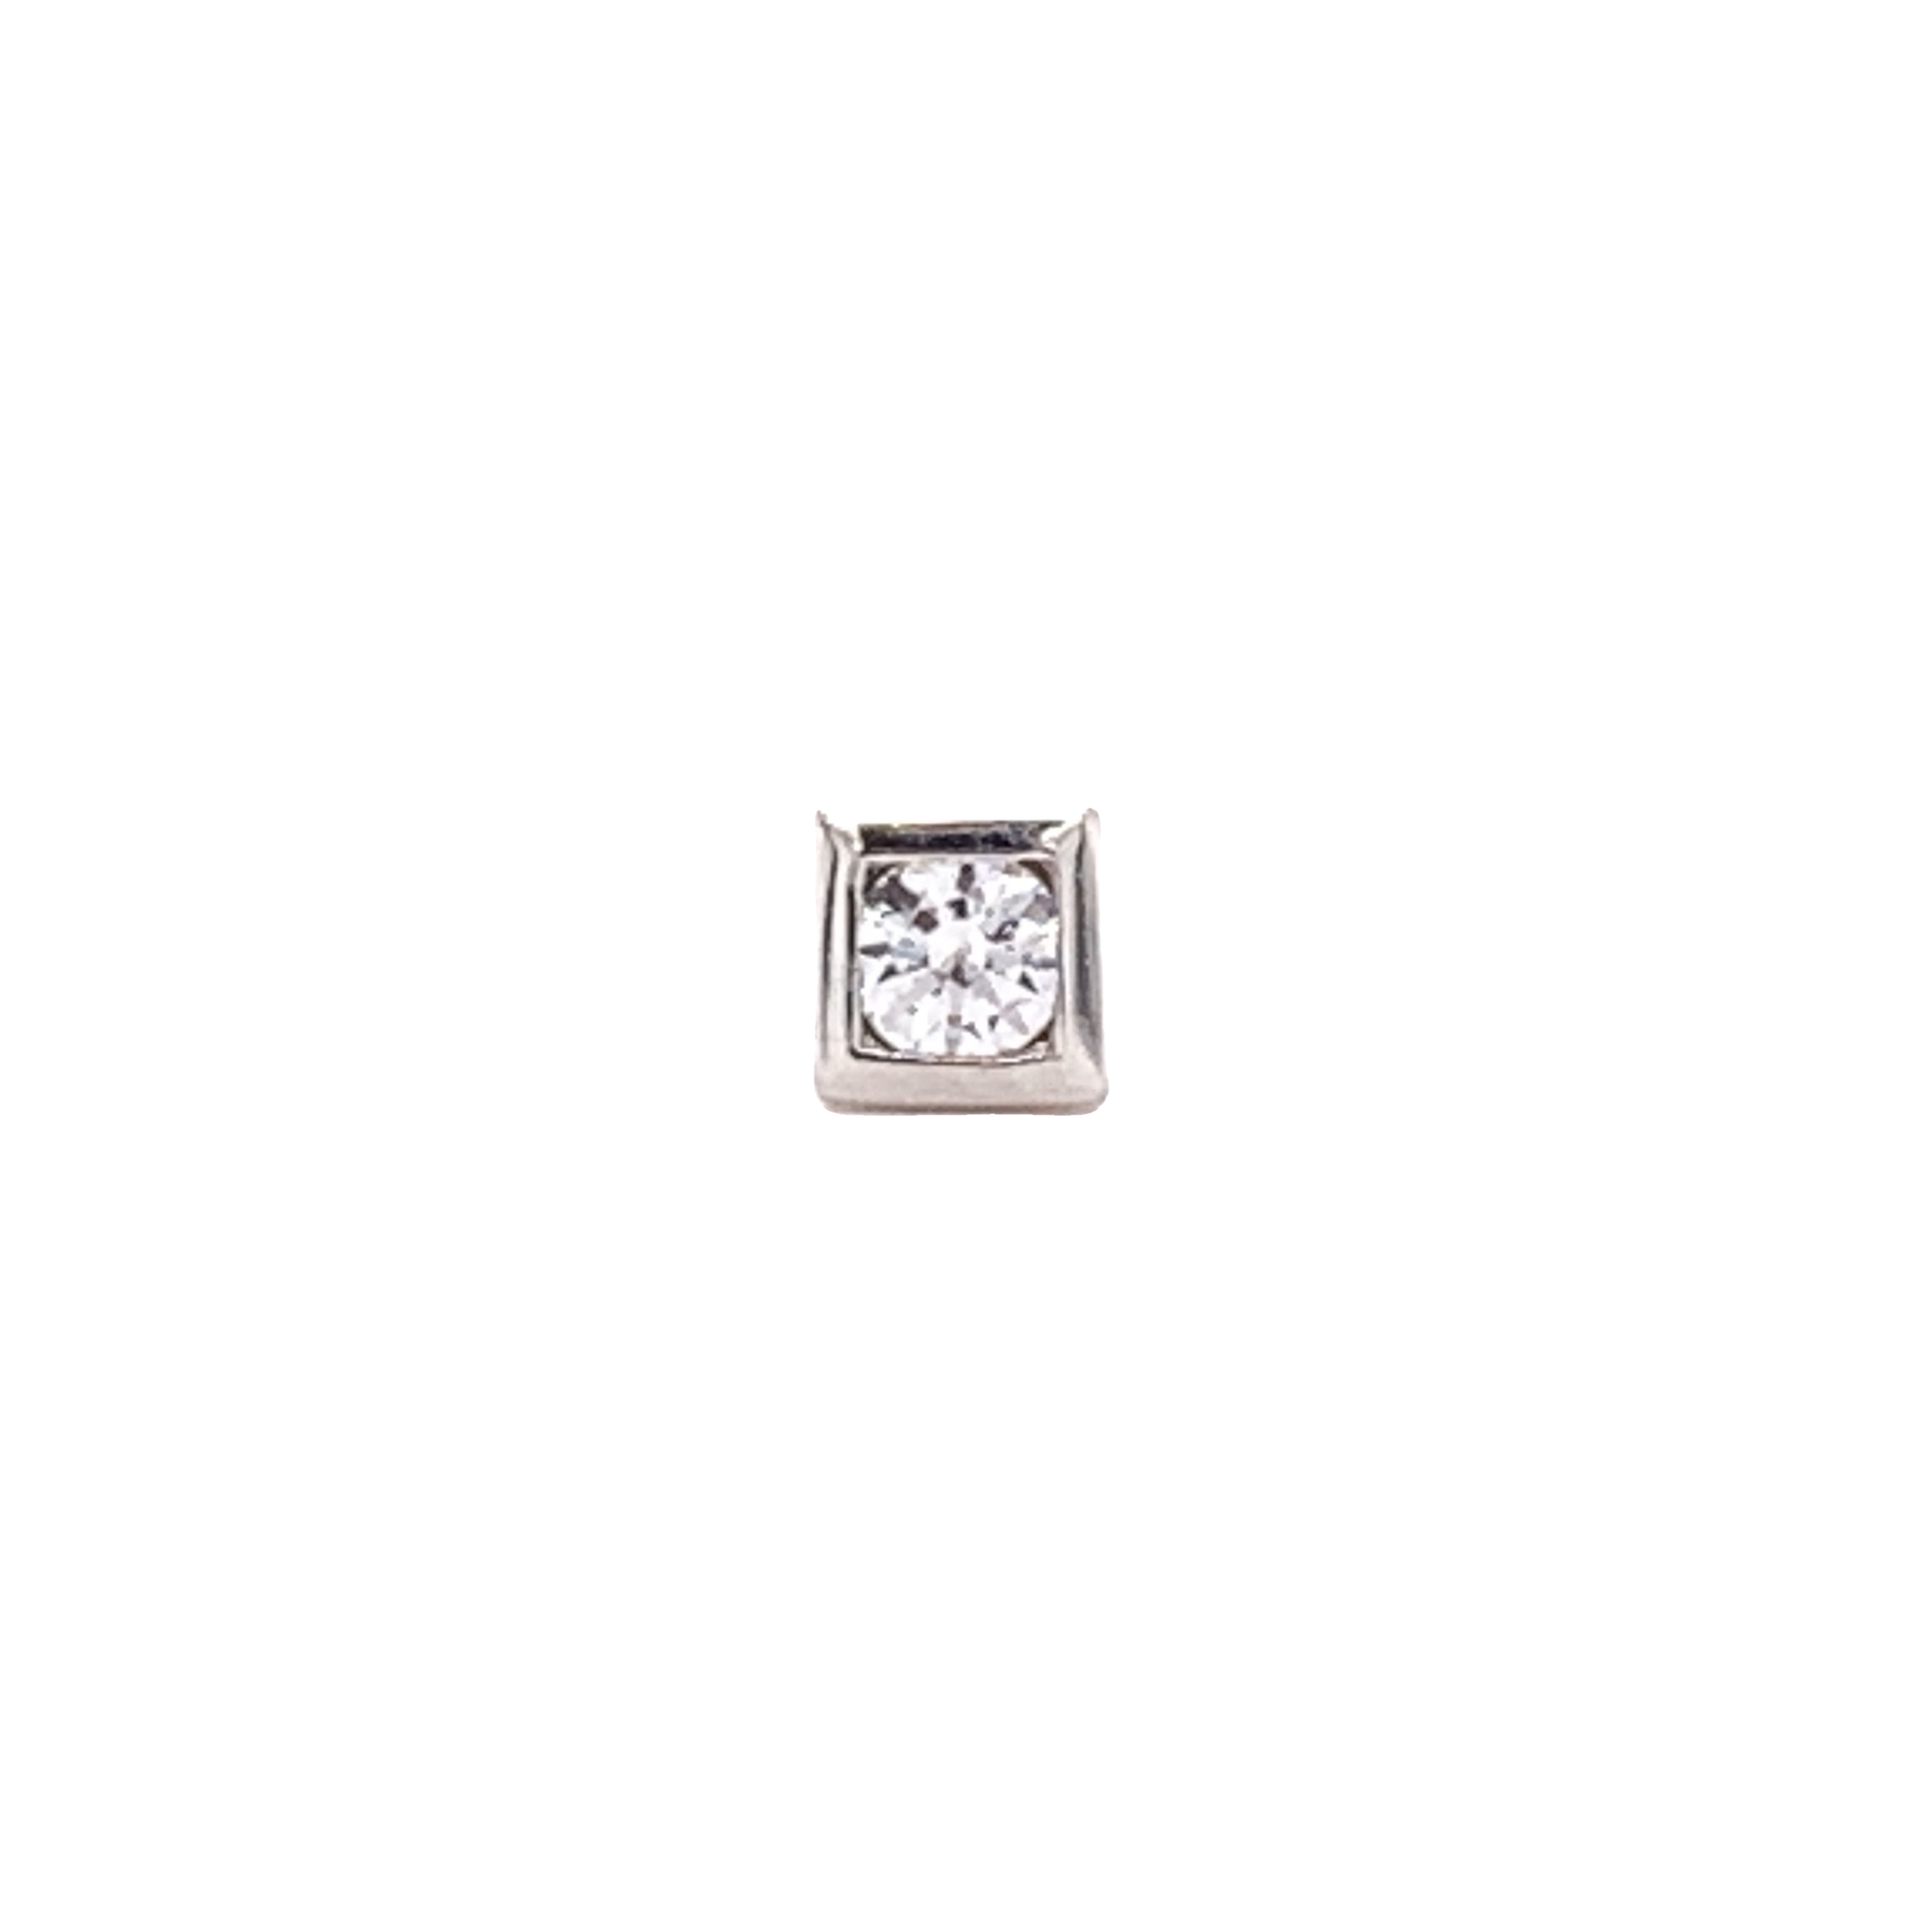 14Ct White Gold Bezel-Set Cz Square Attachment